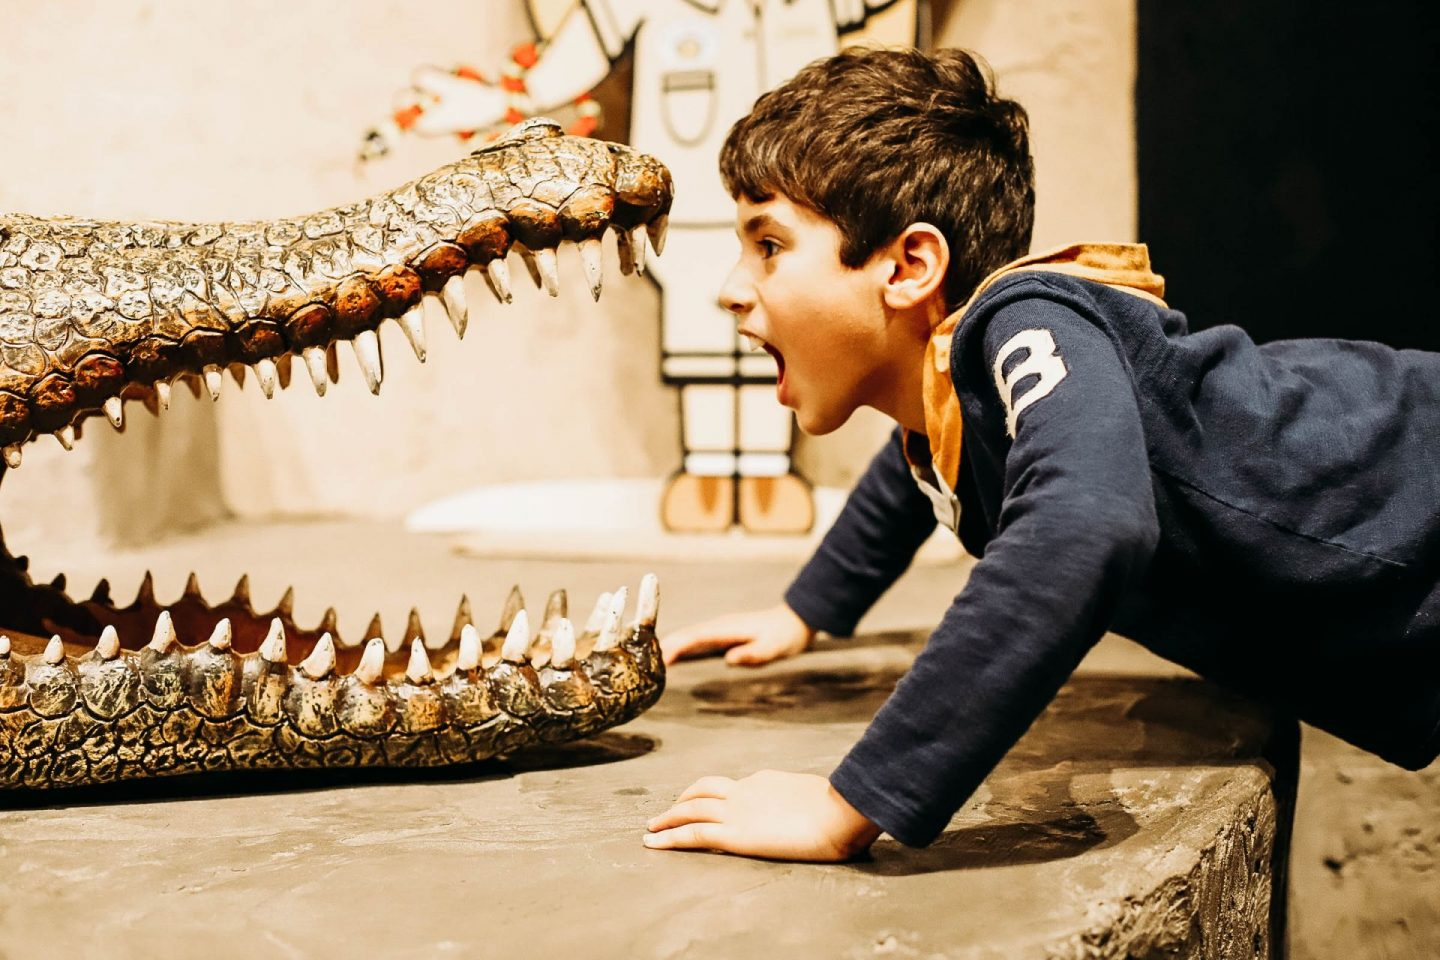 a boy looking into the face of a crocodile